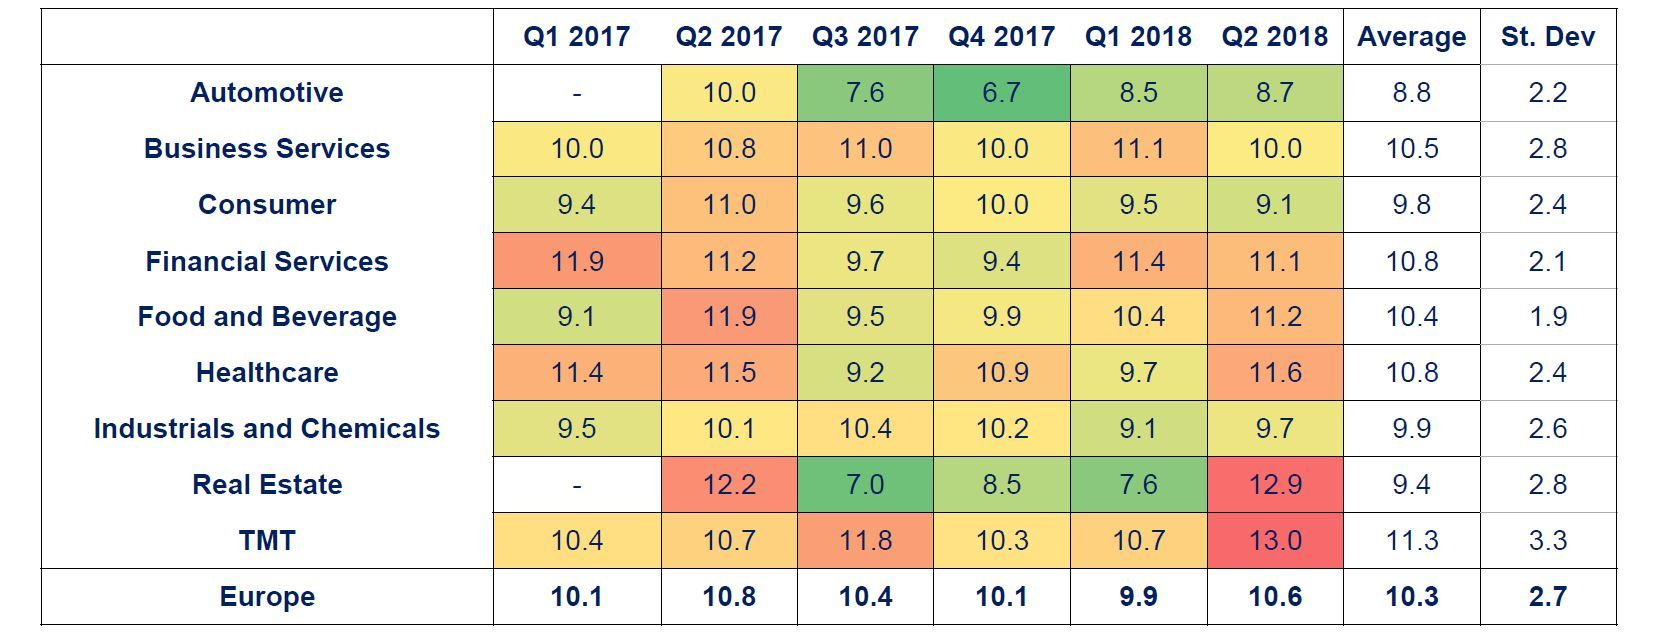 Multiples Heatmap Q2 2018 Sector